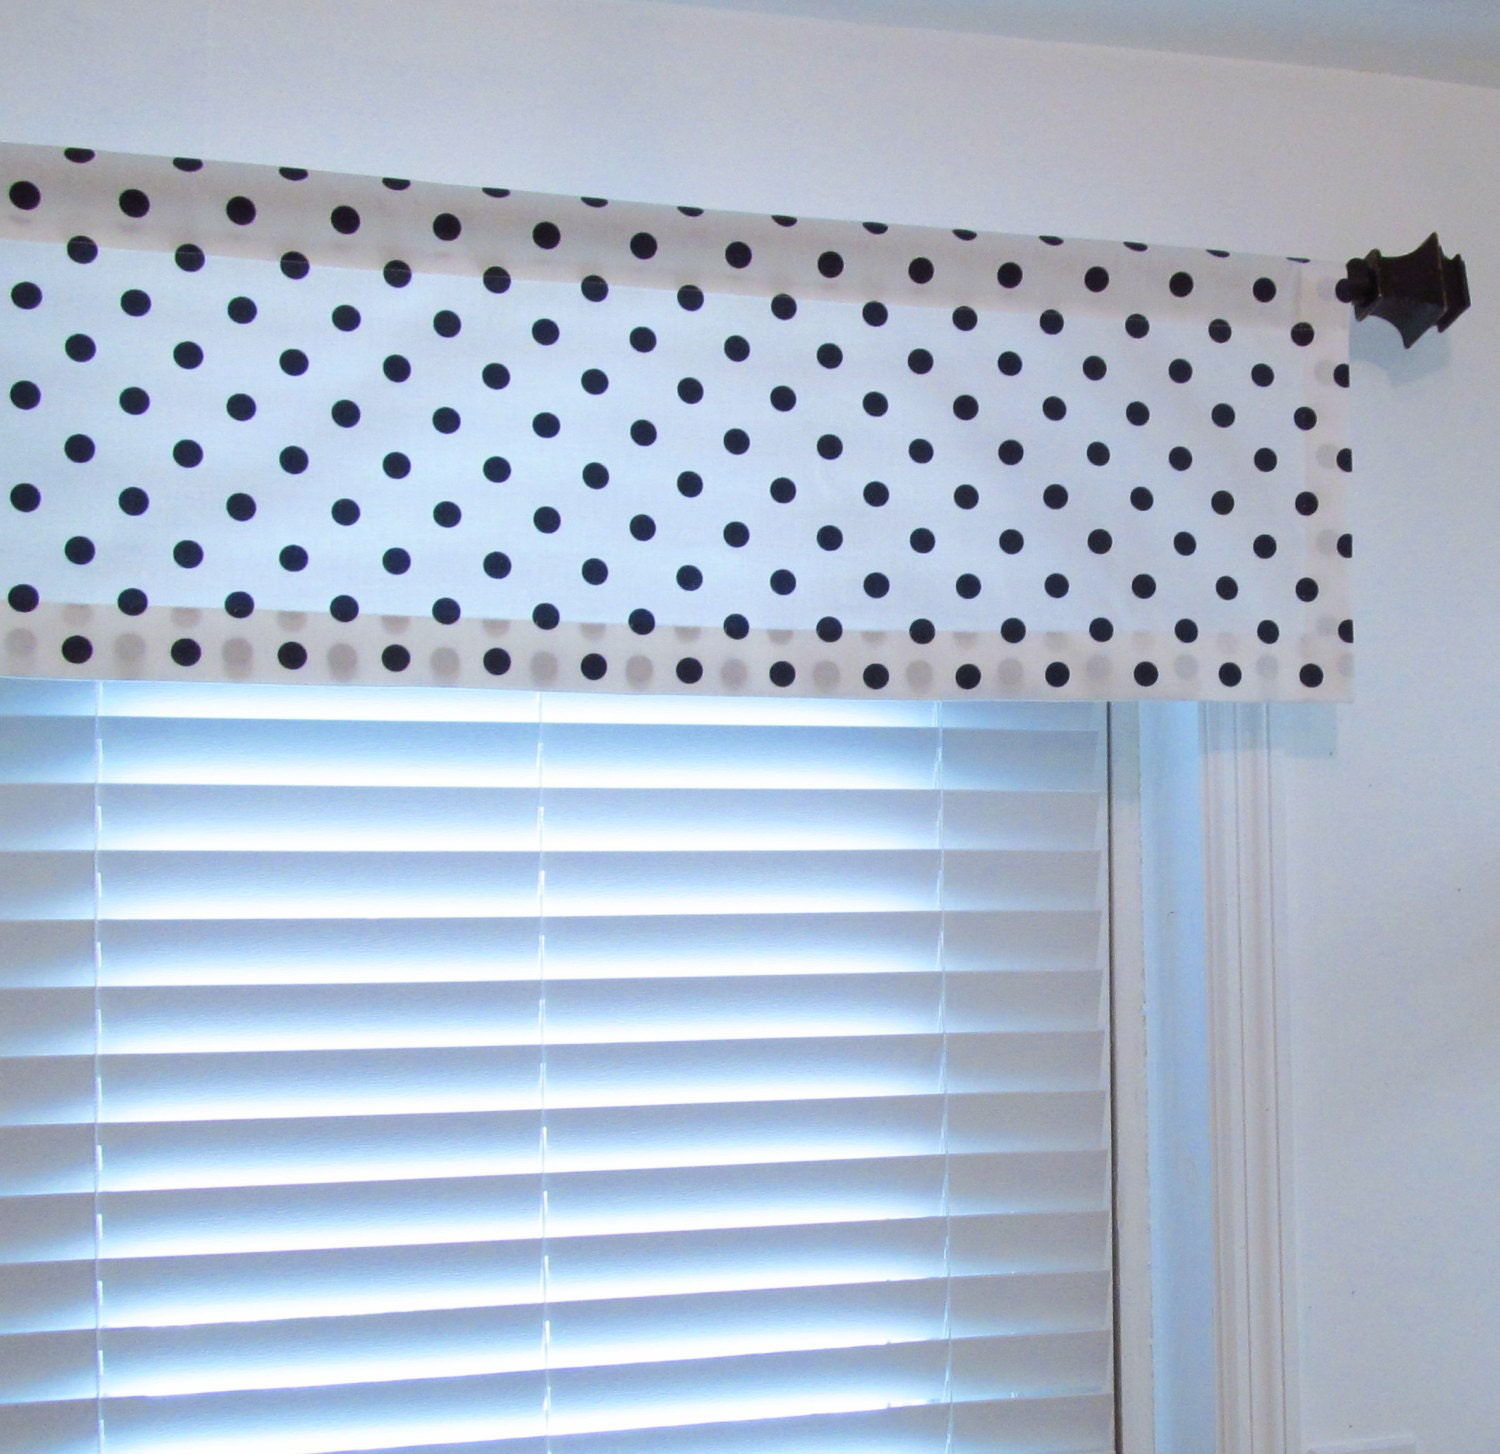 Fabric Shower Curtains 84 Inches Long Navy Polka Dot Wallpaper